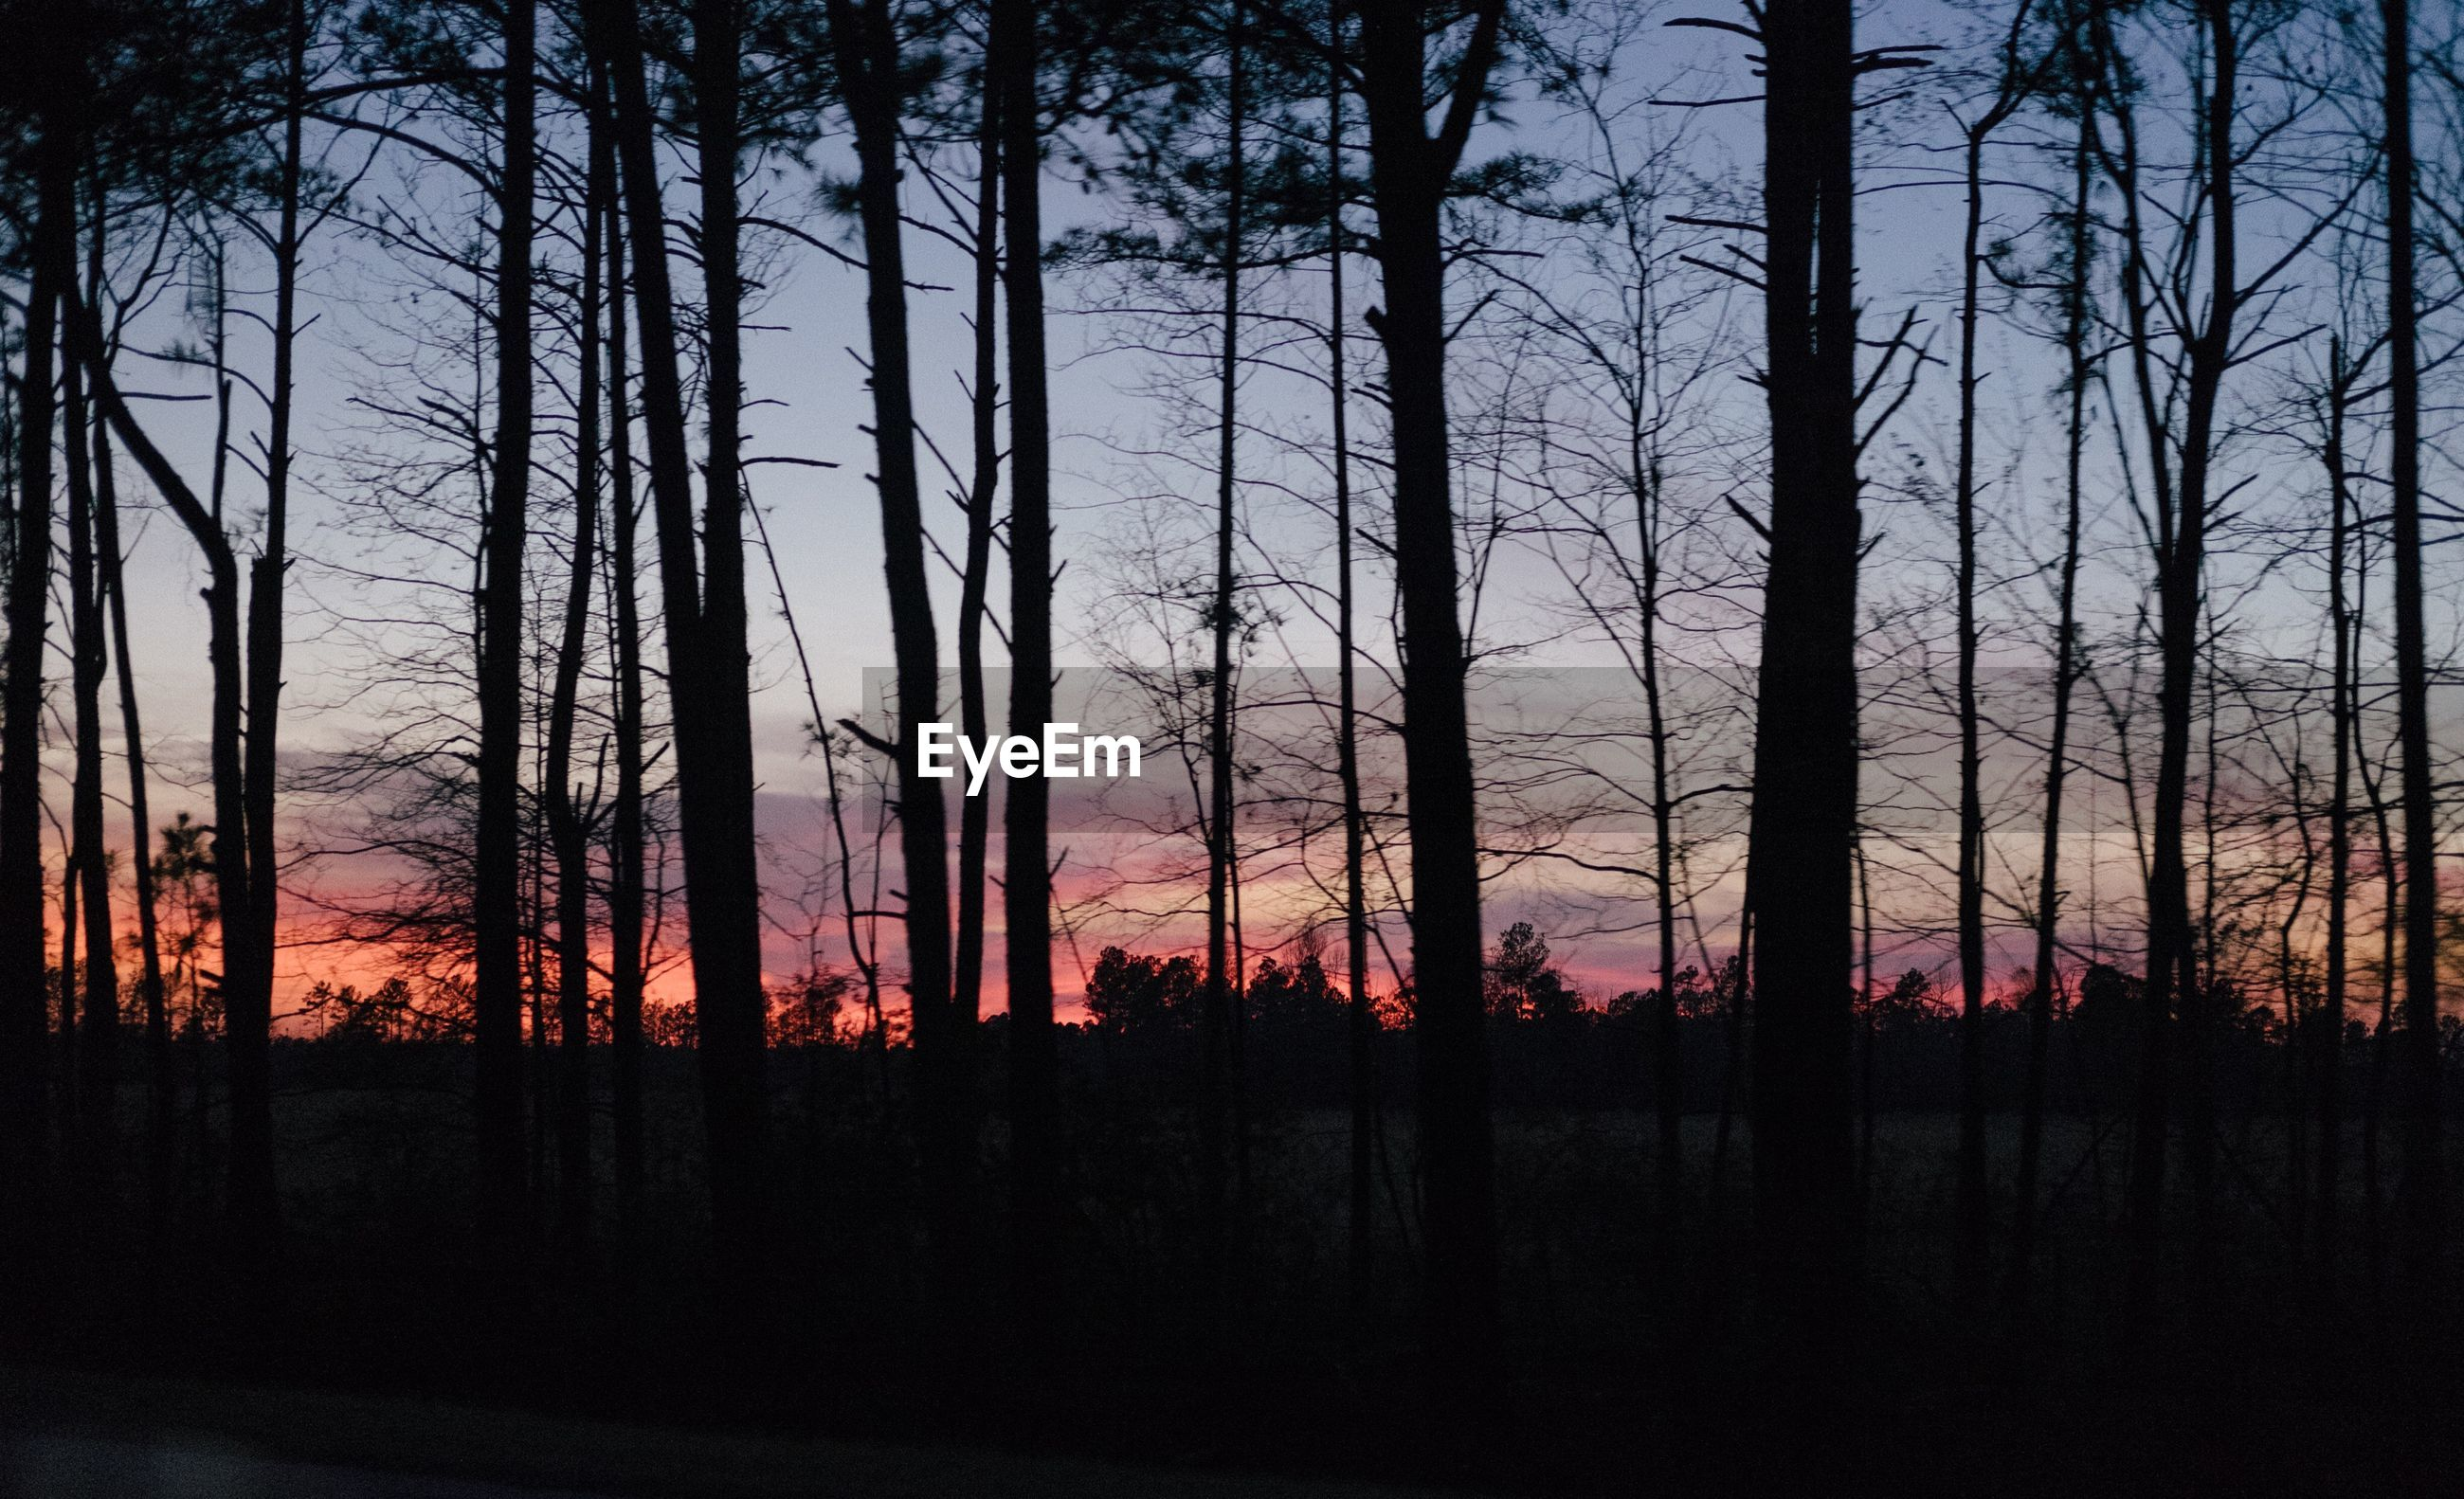 SILHOUETTE TREES IN FOREST DURING SUNSET